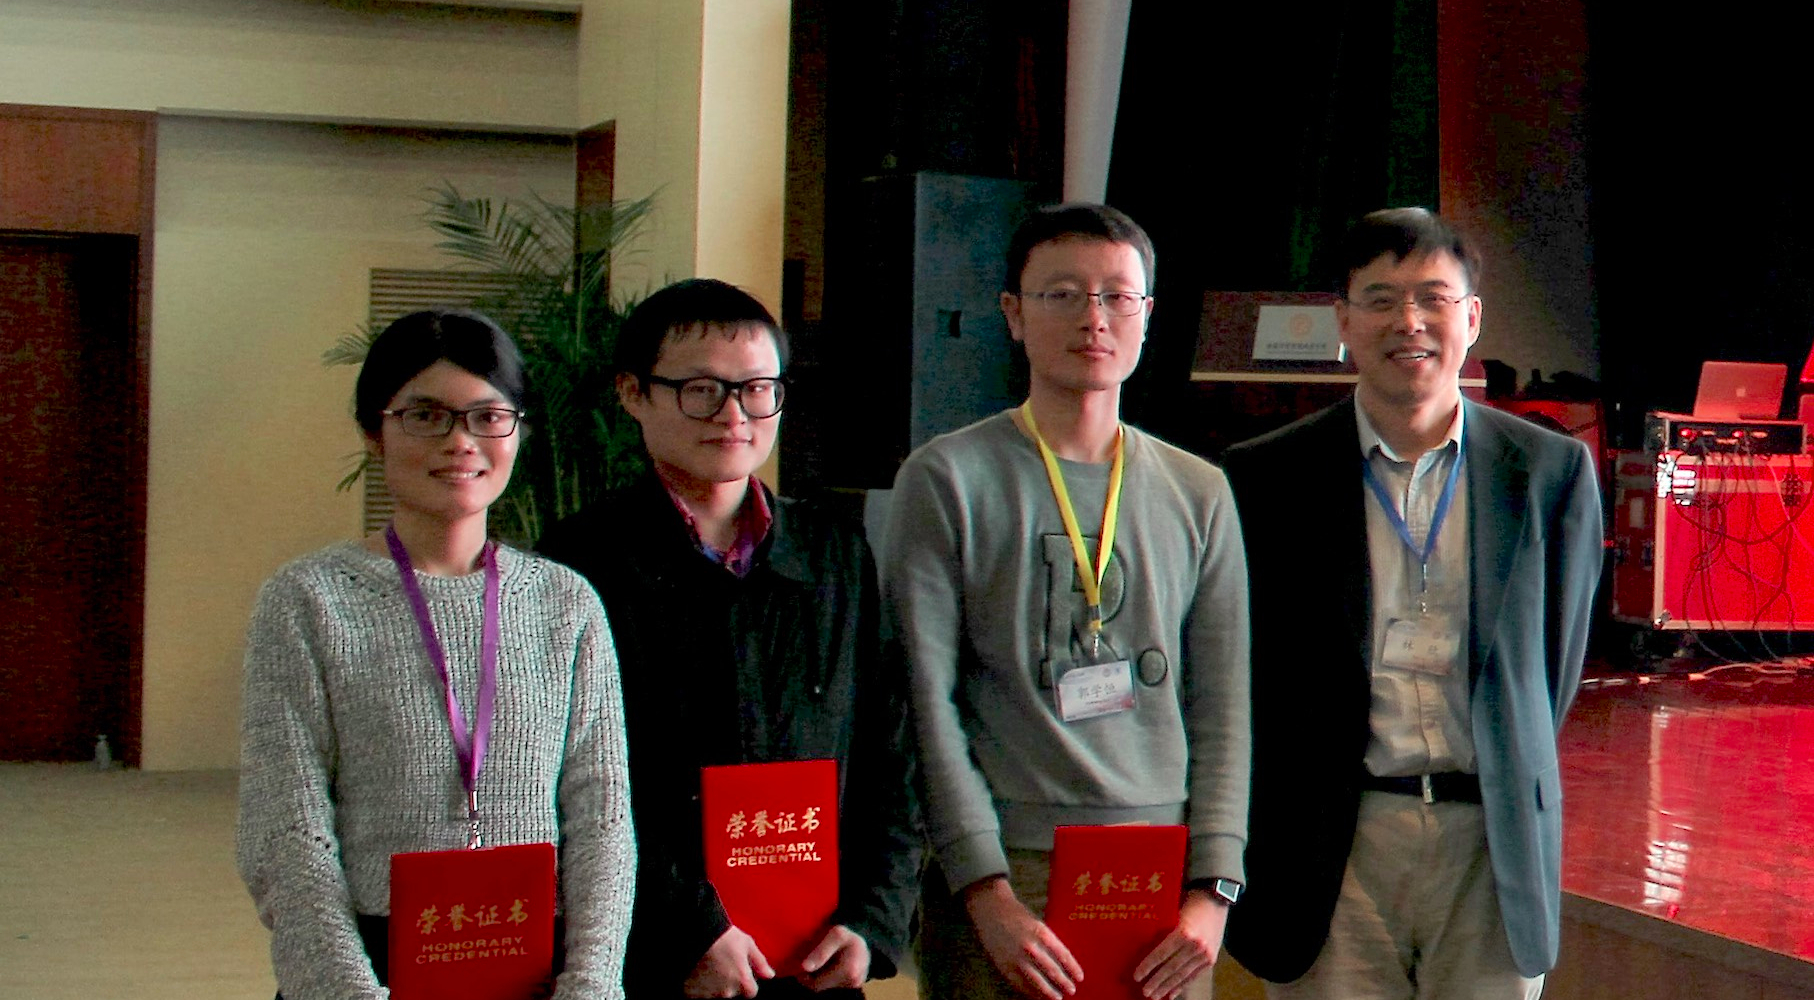 Xiao Ding, Tianming Luo and Xueheng Guo Won Best Elevator-Speech Awards at 2016 FAIR/Retreat Symposim